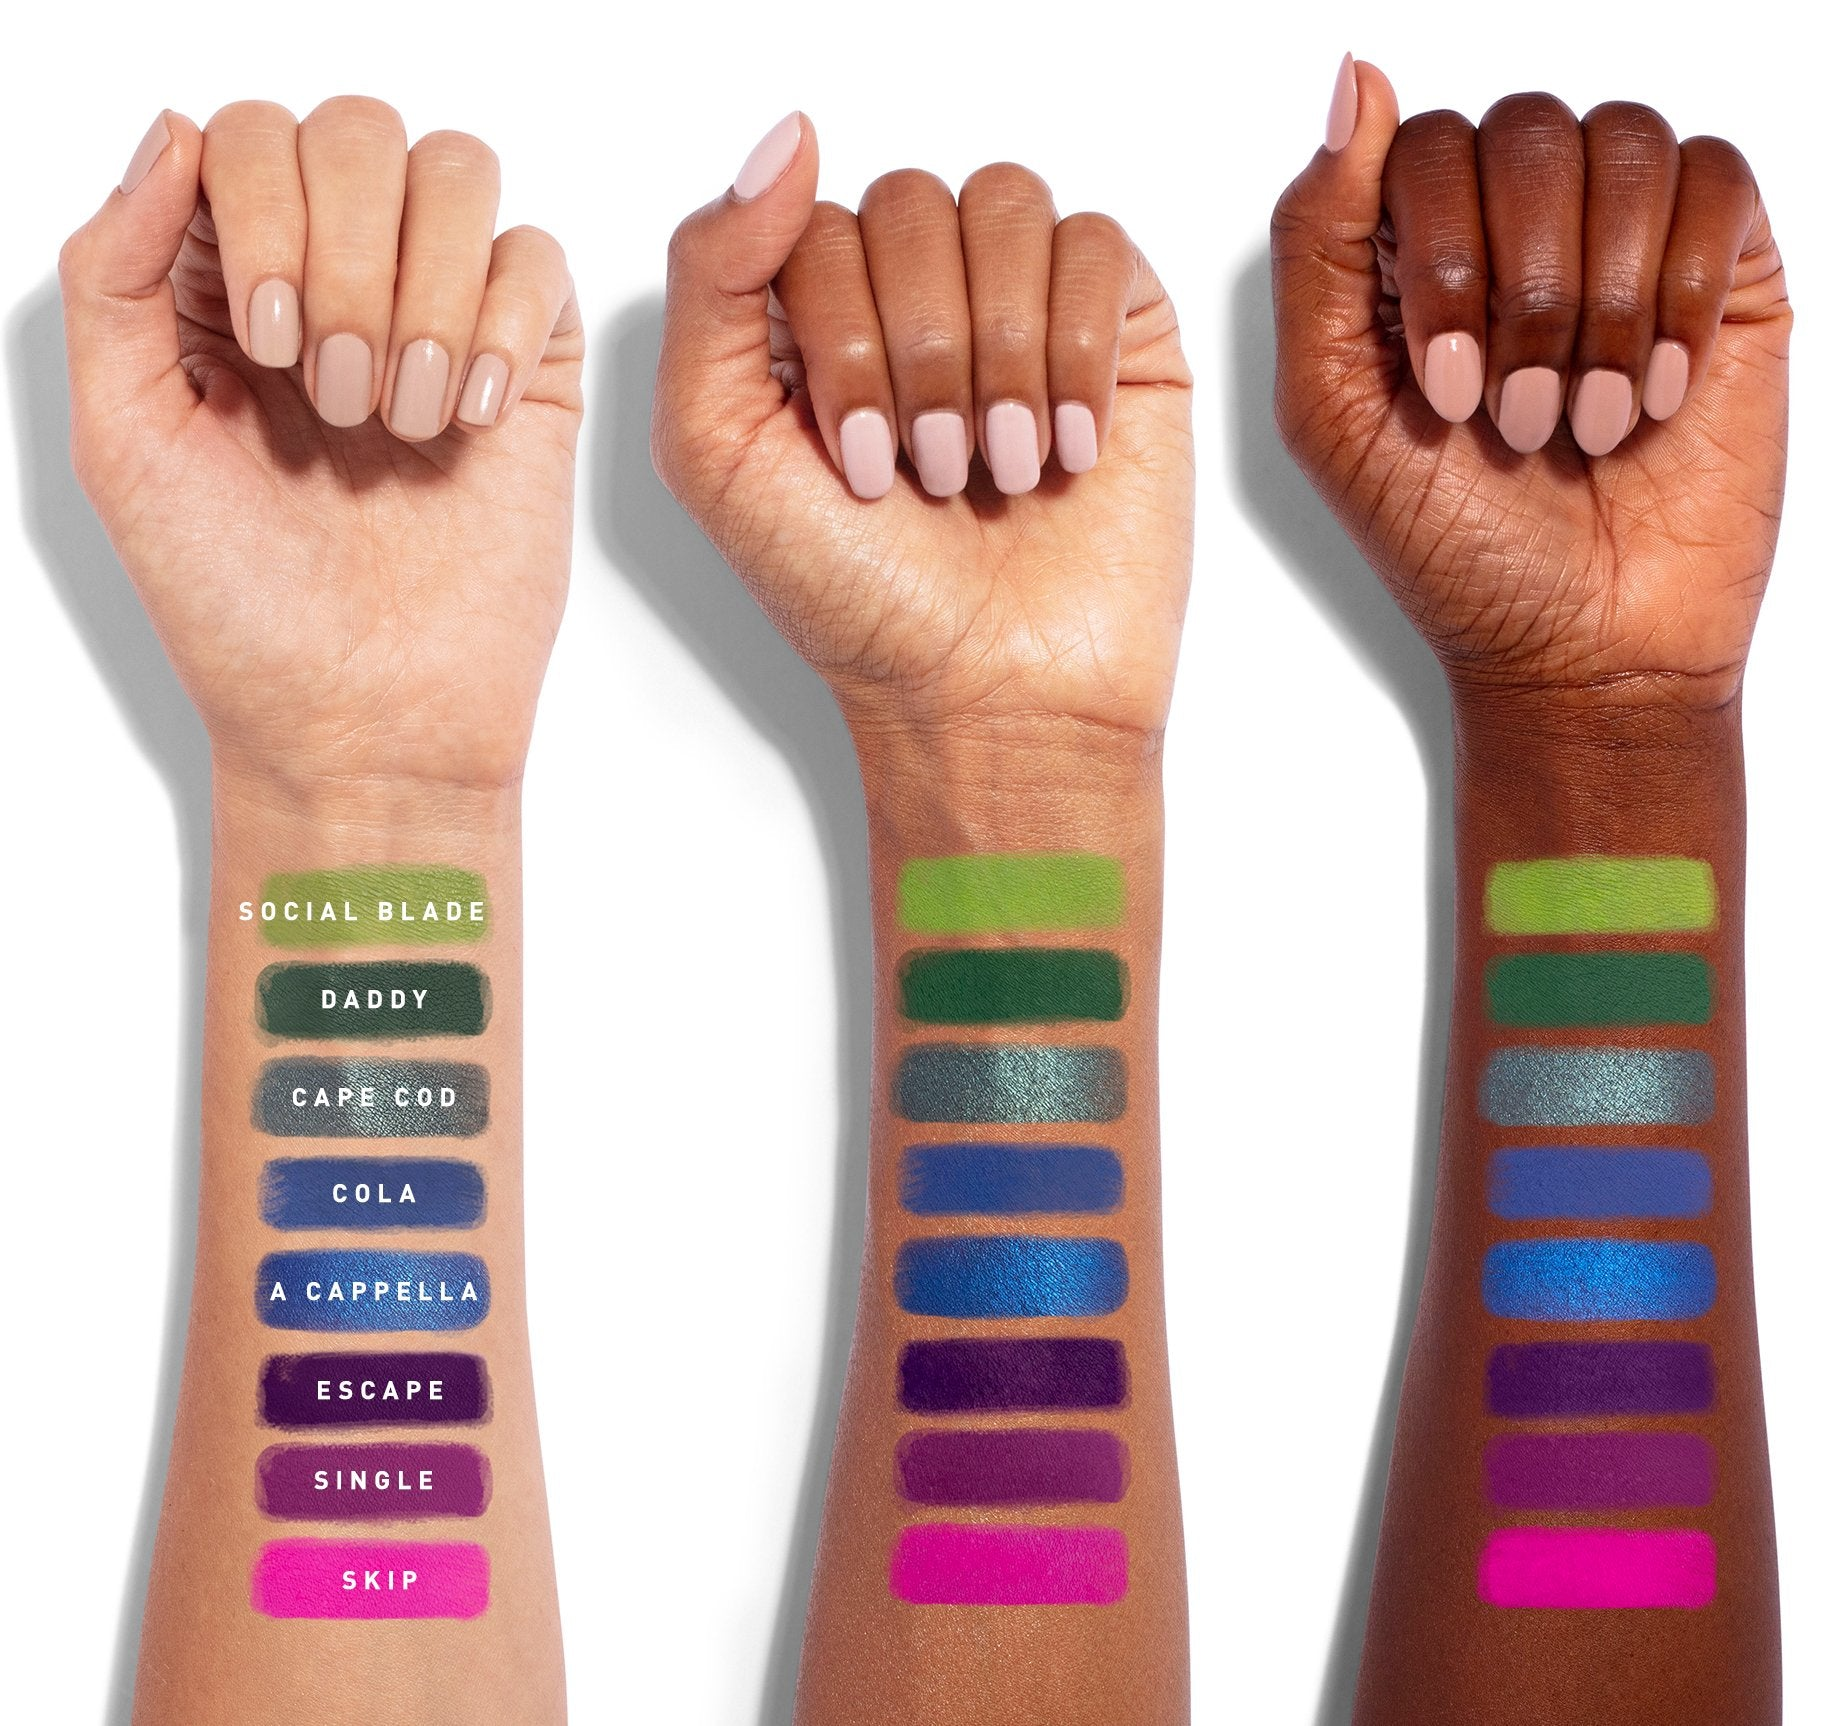 THE JAMES CHARLES PALETTE ARM SWATCHES, view larger image